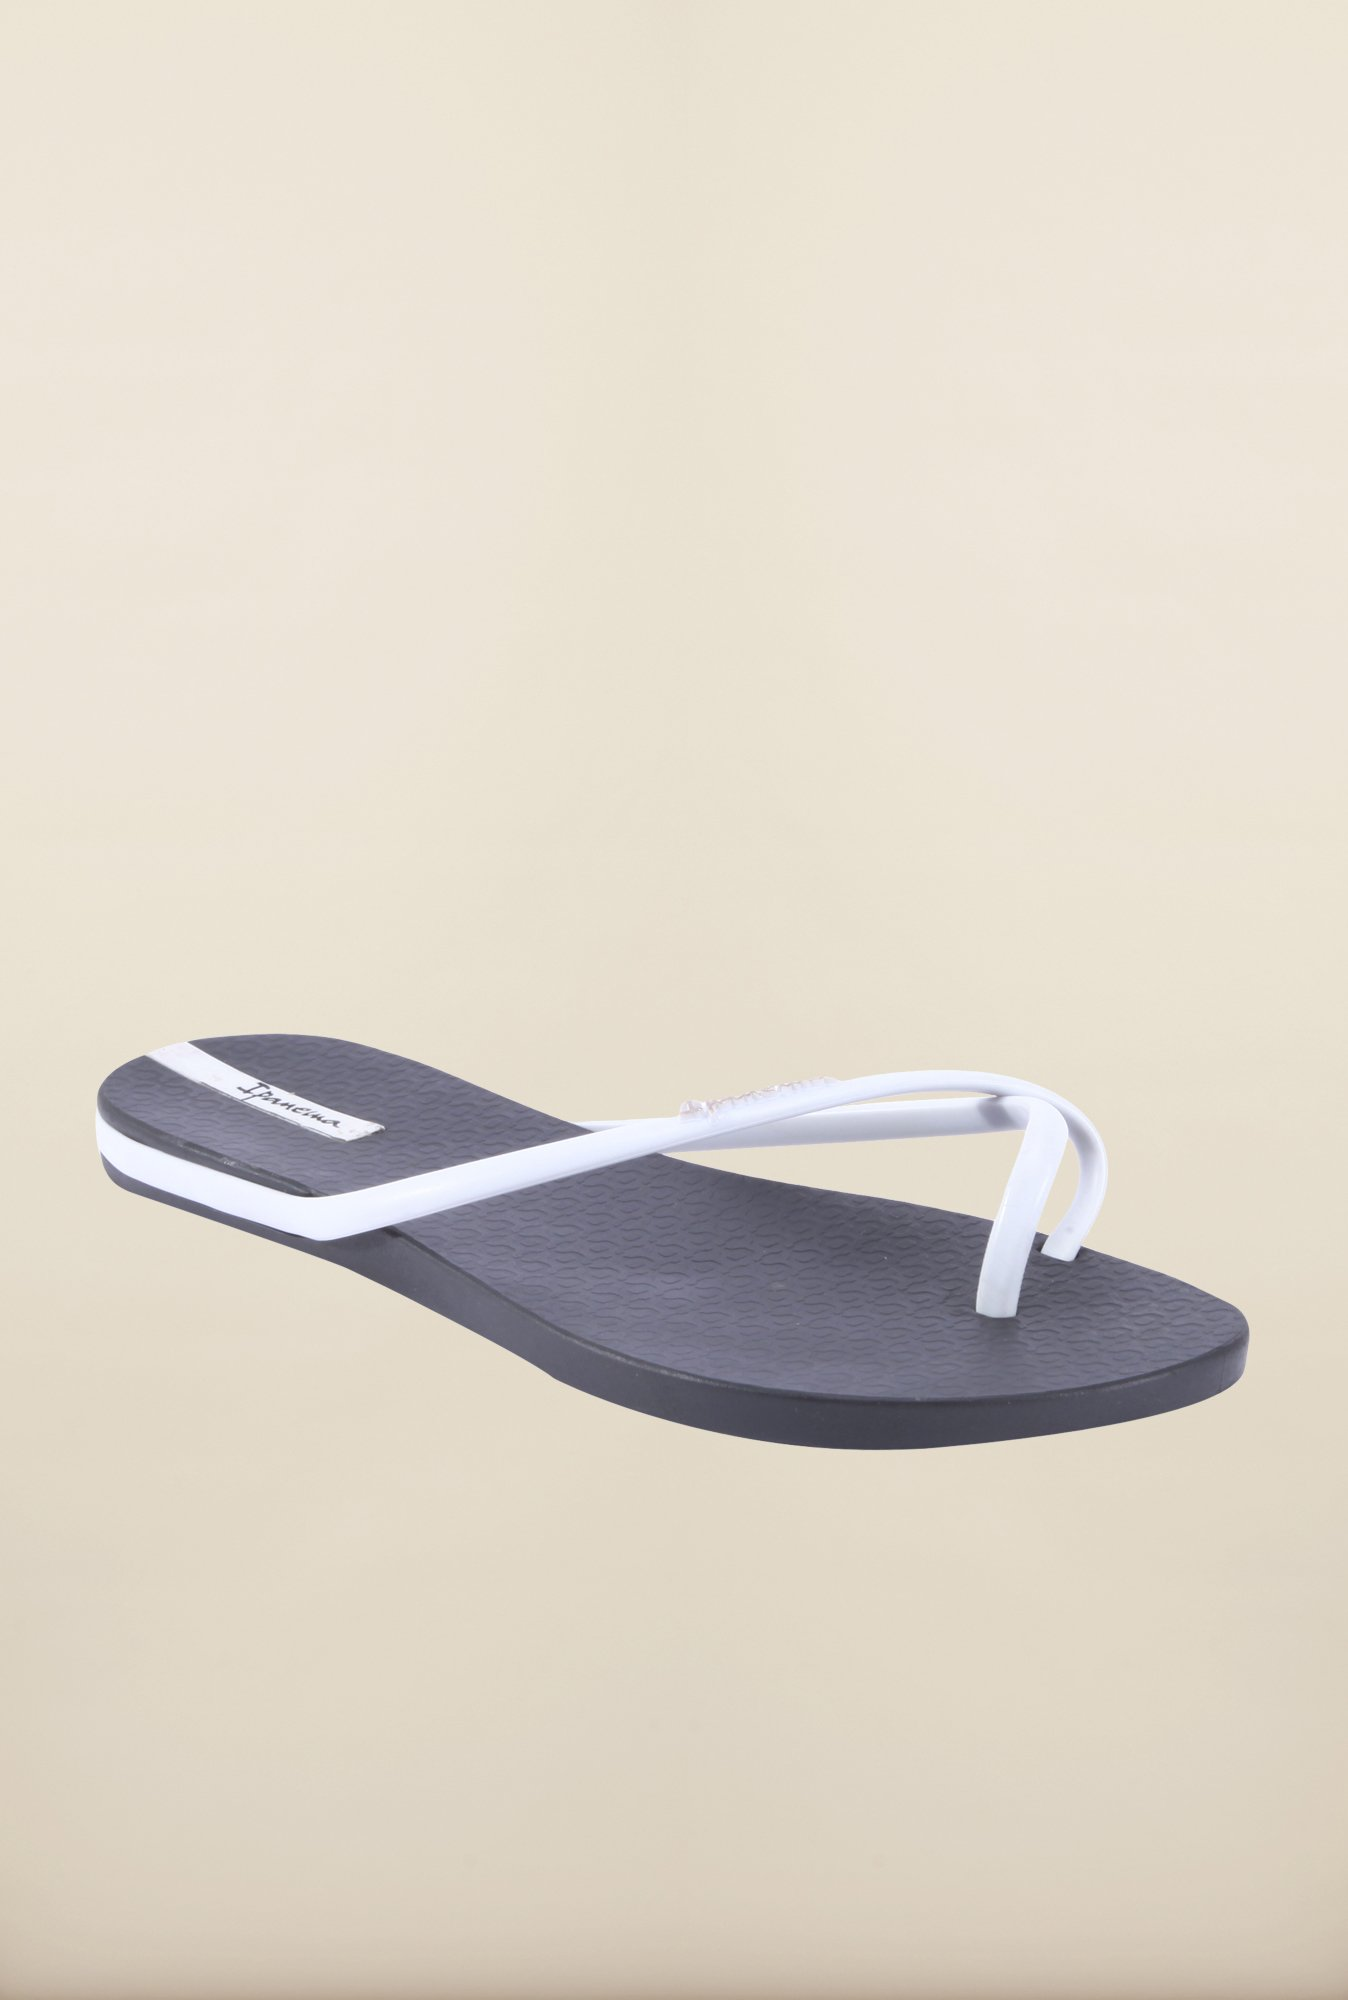 Ipanema White & Black Flip Flops